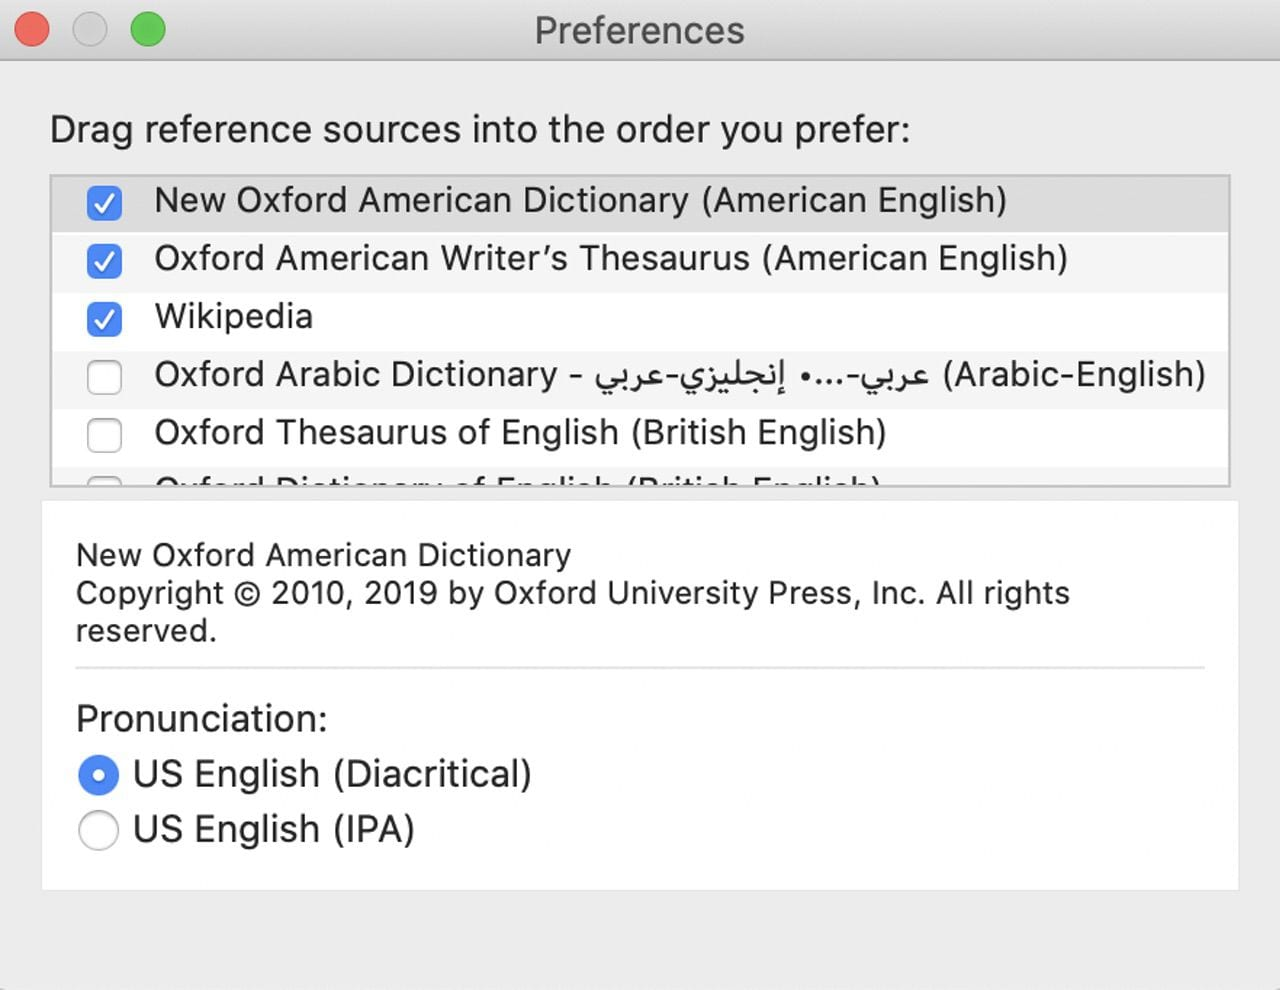 Dictionary preferences provide a way to prioritize which sources are listed first.